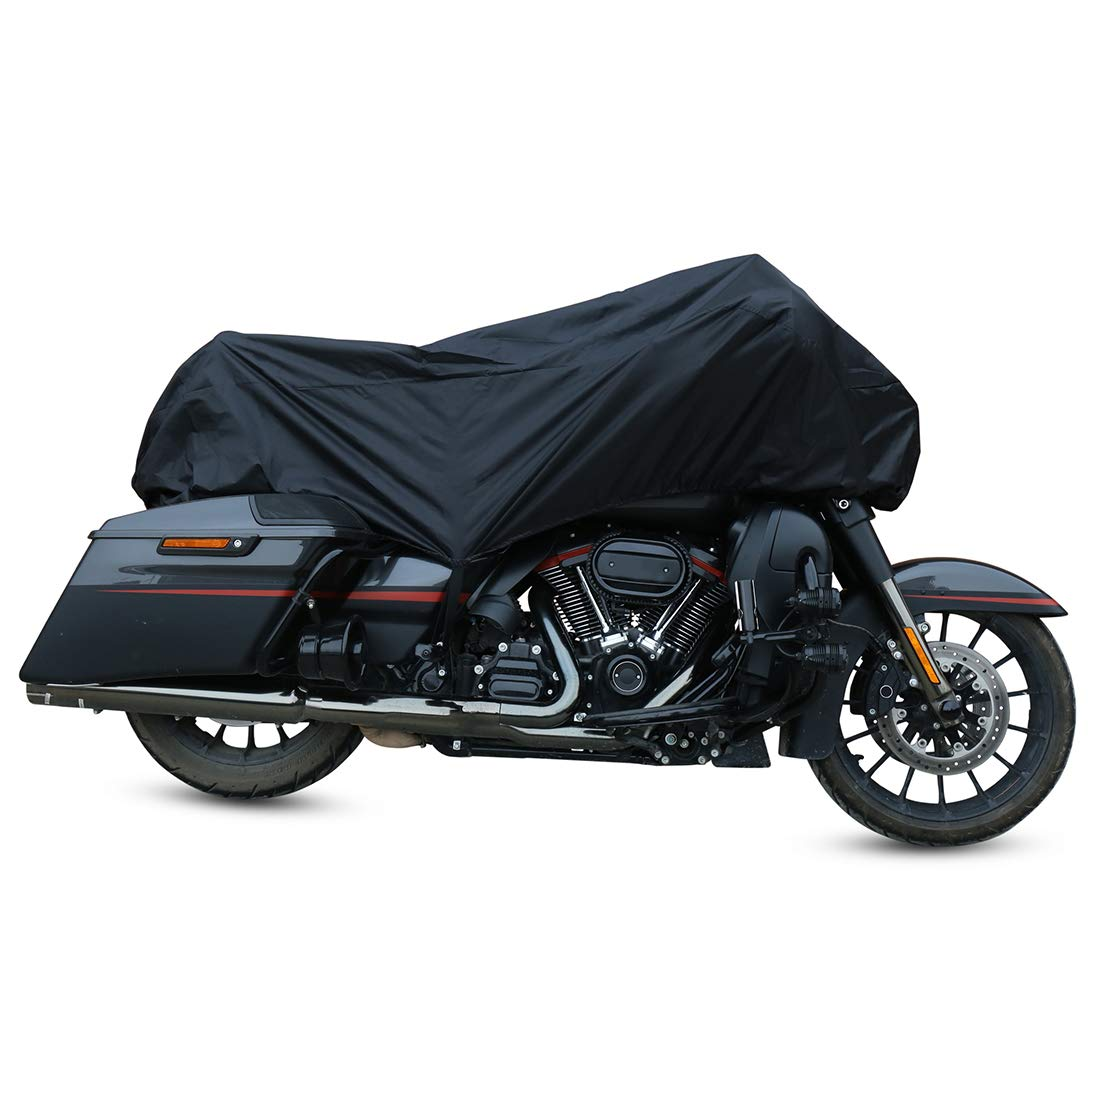 X AUTOHAUX Motorcycle Cover Street Bike Scooter Lightweight Half Cover Outdoor Waterproof Rain Dust UV Protector Black Size M for Honda Kawasaki Yamaha Suzuki Harley Davidson